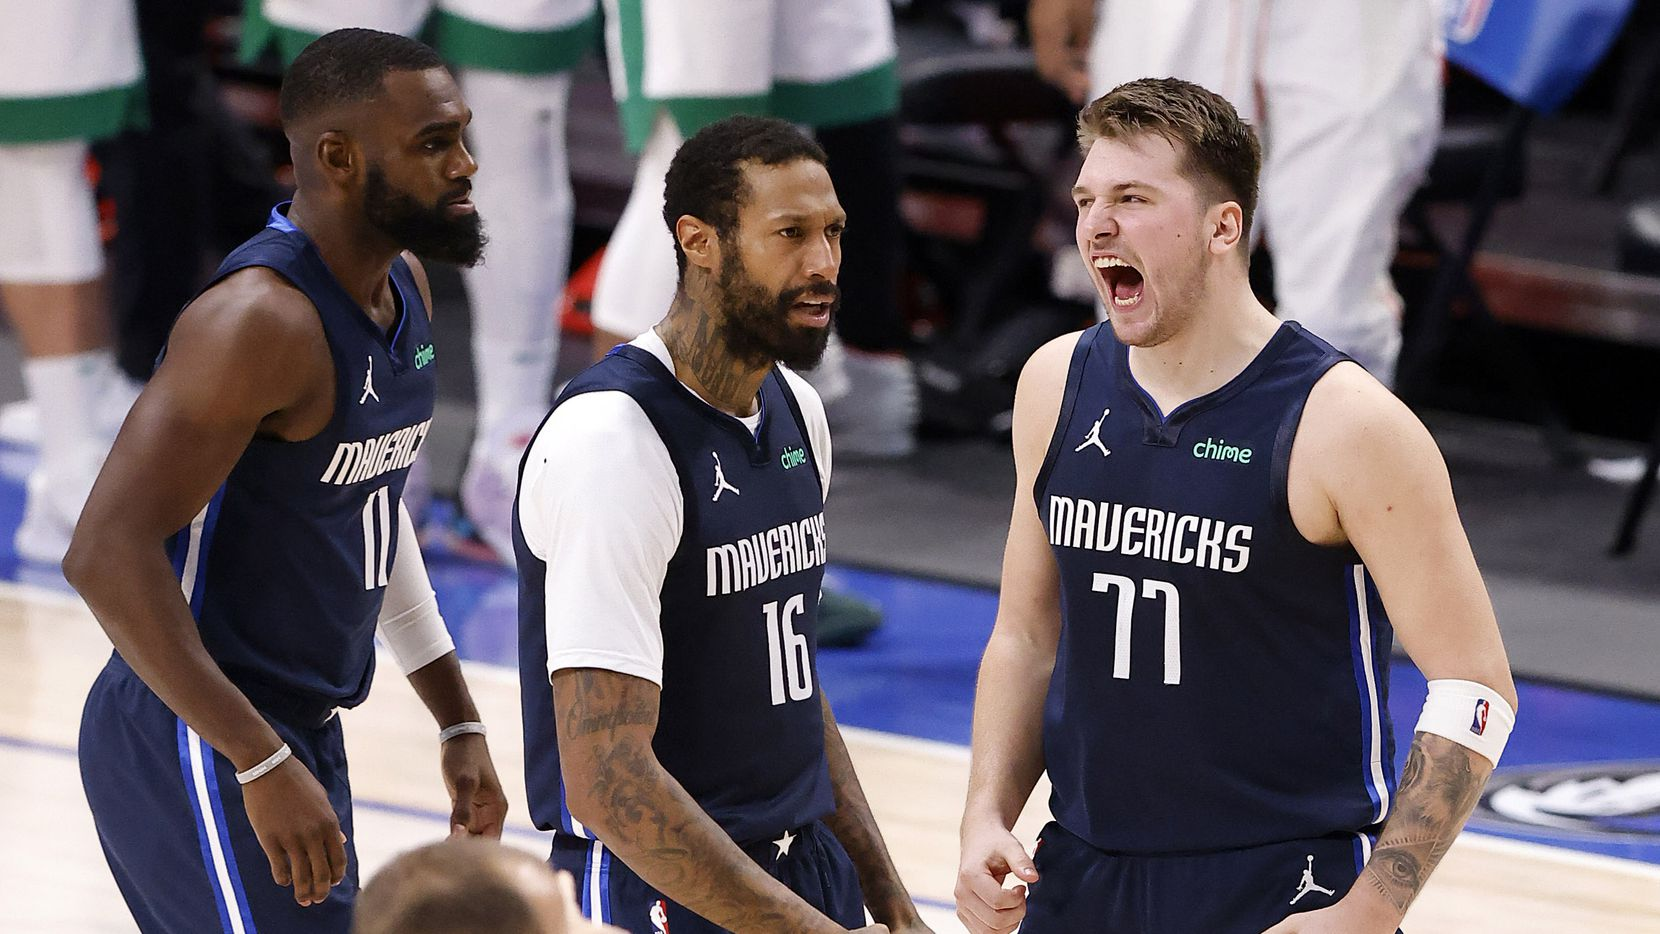 Dallas Mavericks guard Luka Doncic (77) celebrates his game-winning shot with forward James Johnson (16) in the fourth quarter against the Boston Celtics at the American Airlines Center in Dallas, Tuesday, February 23, 2021.